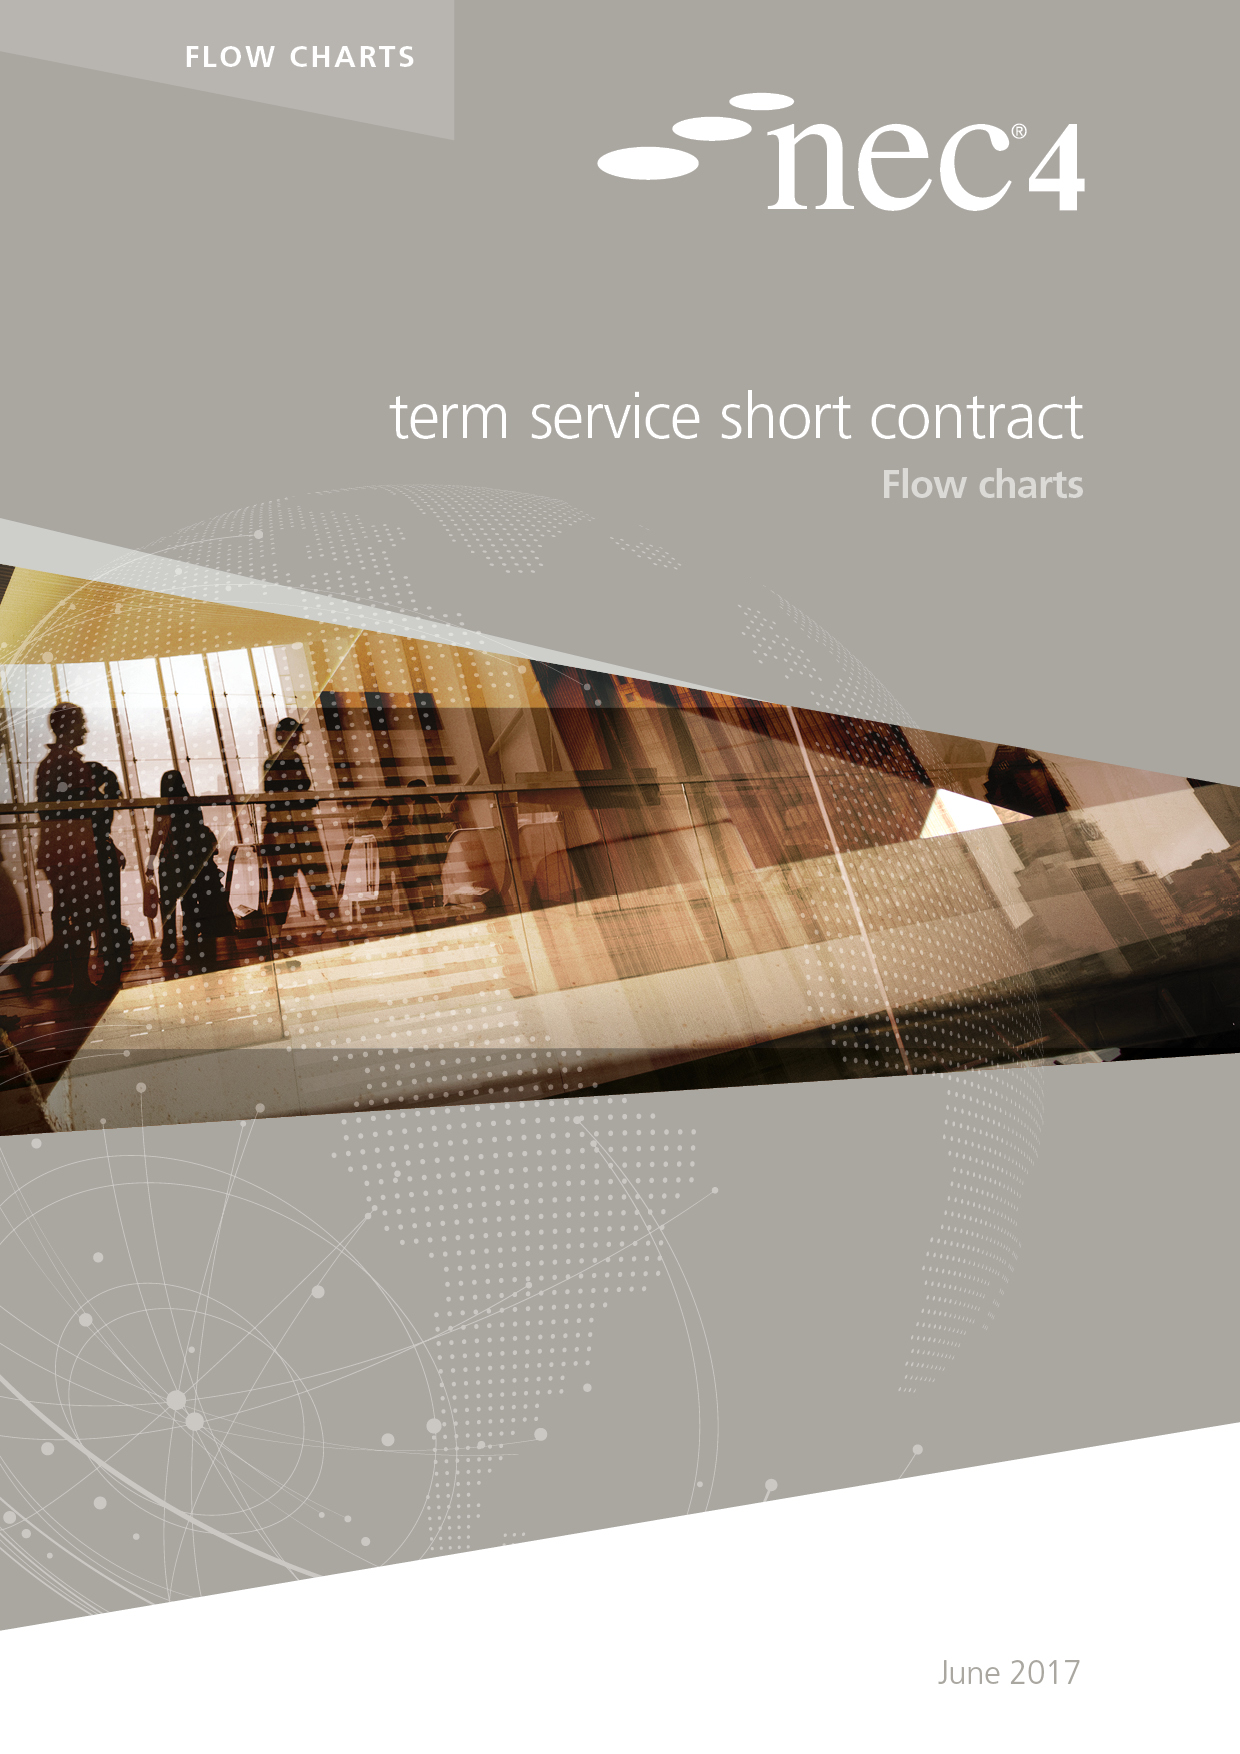 NEC4: Term Service Short Contract Flow Charts